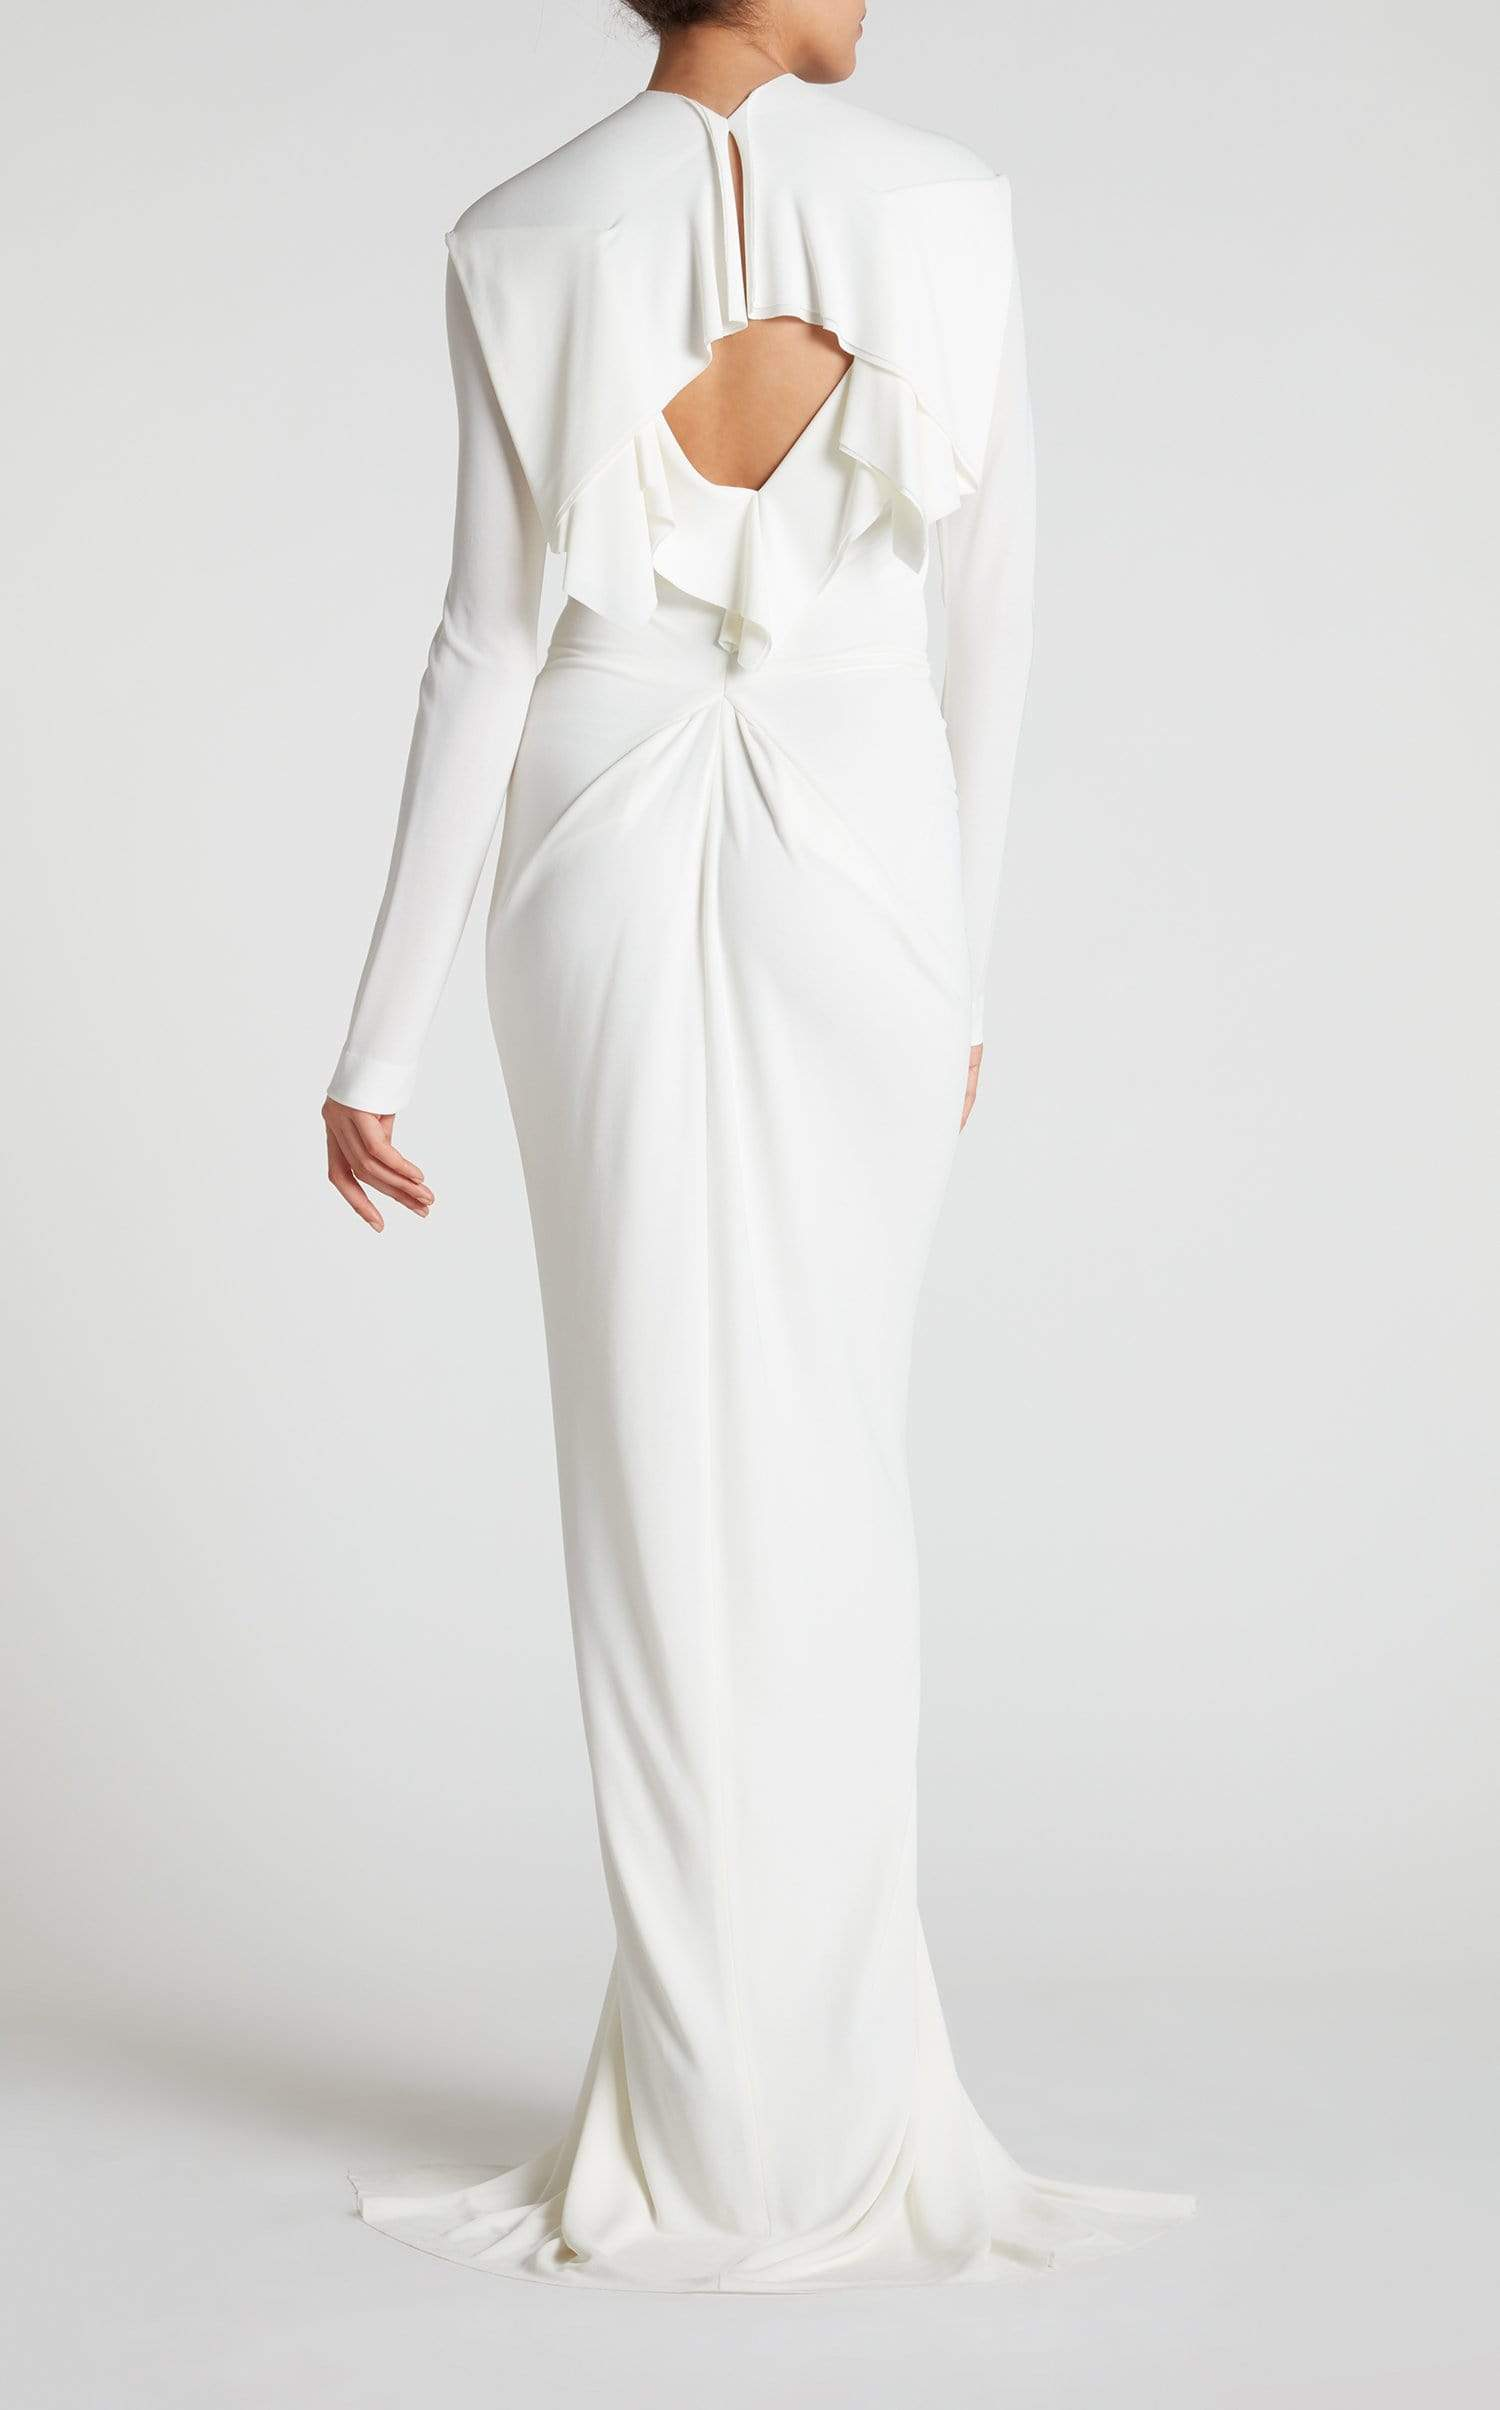 Compeyson Gown In White from Roland Mouret